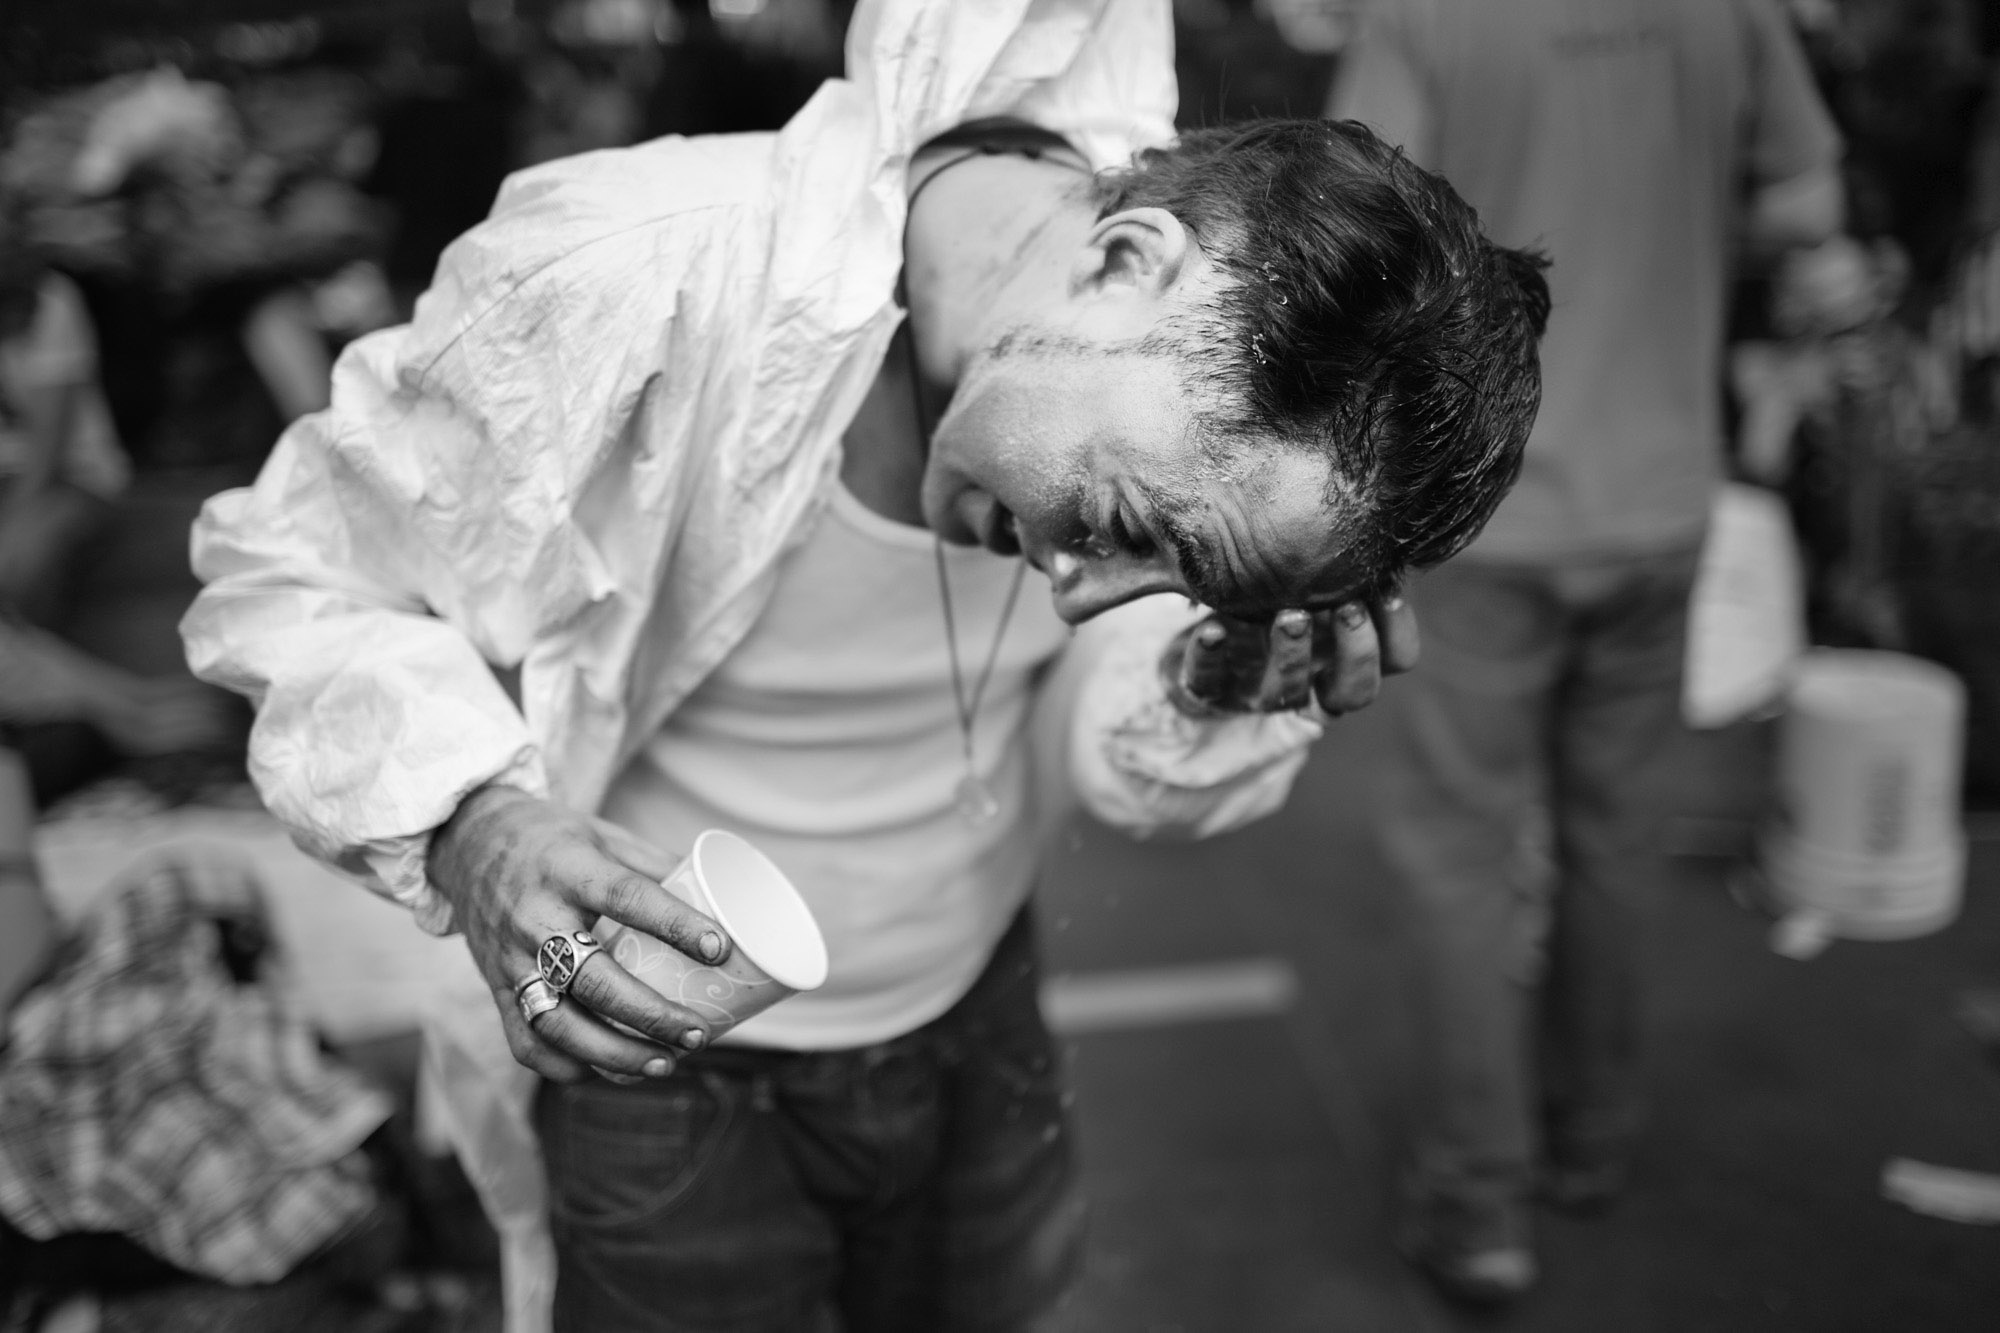 An OWS protestor washes paint off of his face after a demonstration.